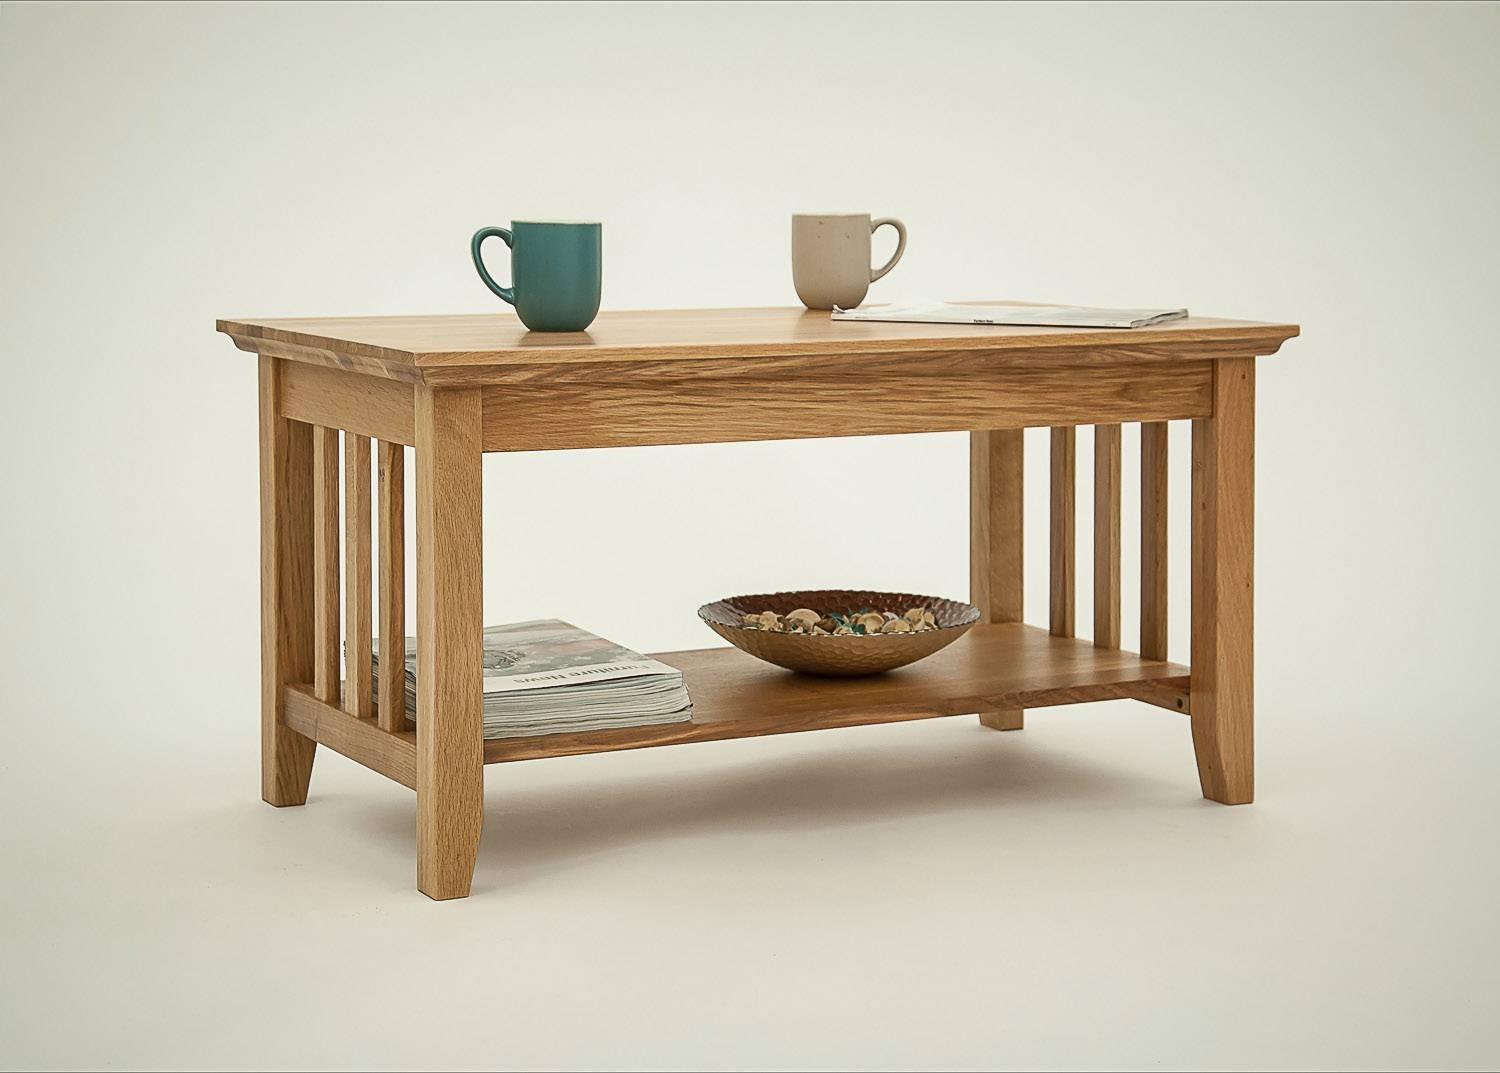 Hereford Rustic Oak Coffee Table With Shelf. Buy Online with regard to Oak Coffee Tables With Shelf (Image 14 of 30)